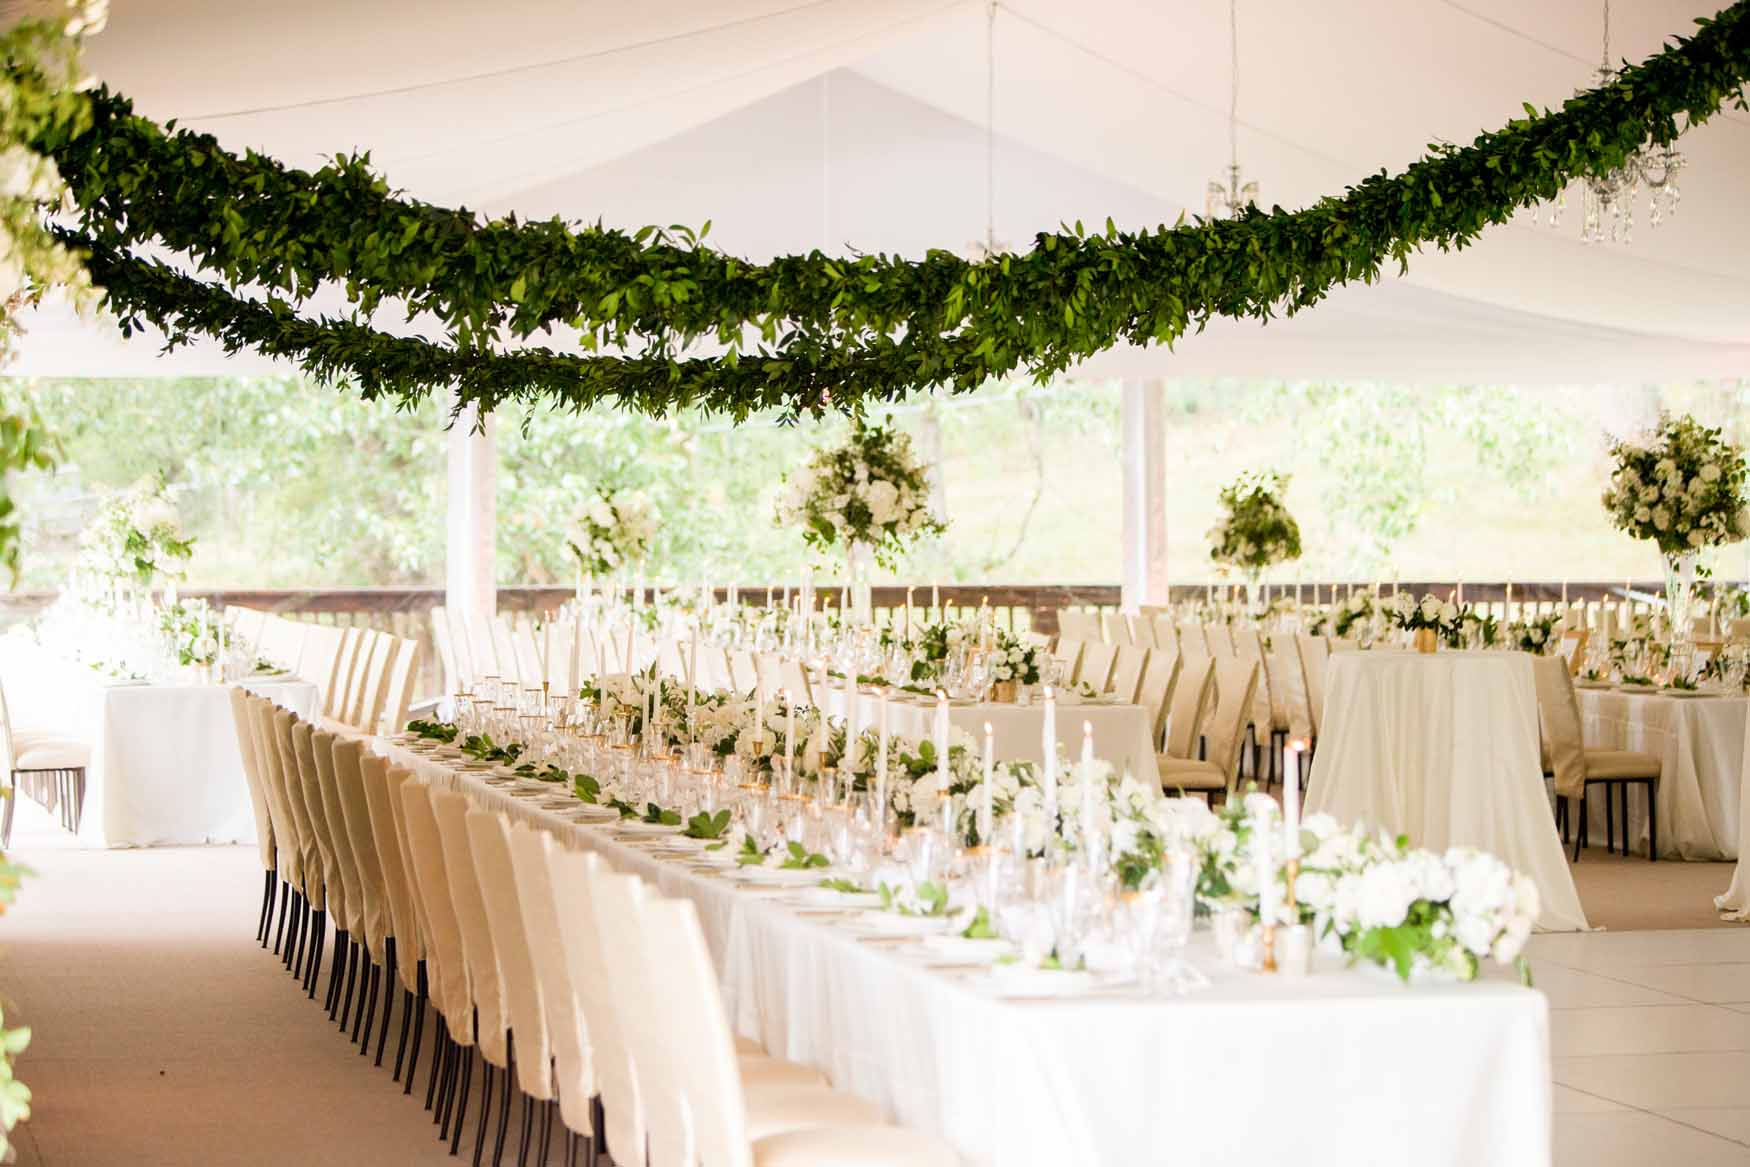 Greenery garlands in wedding tent with long tables - Elegant Summer Private Estate Wedding. Flora Nova Design Seattle